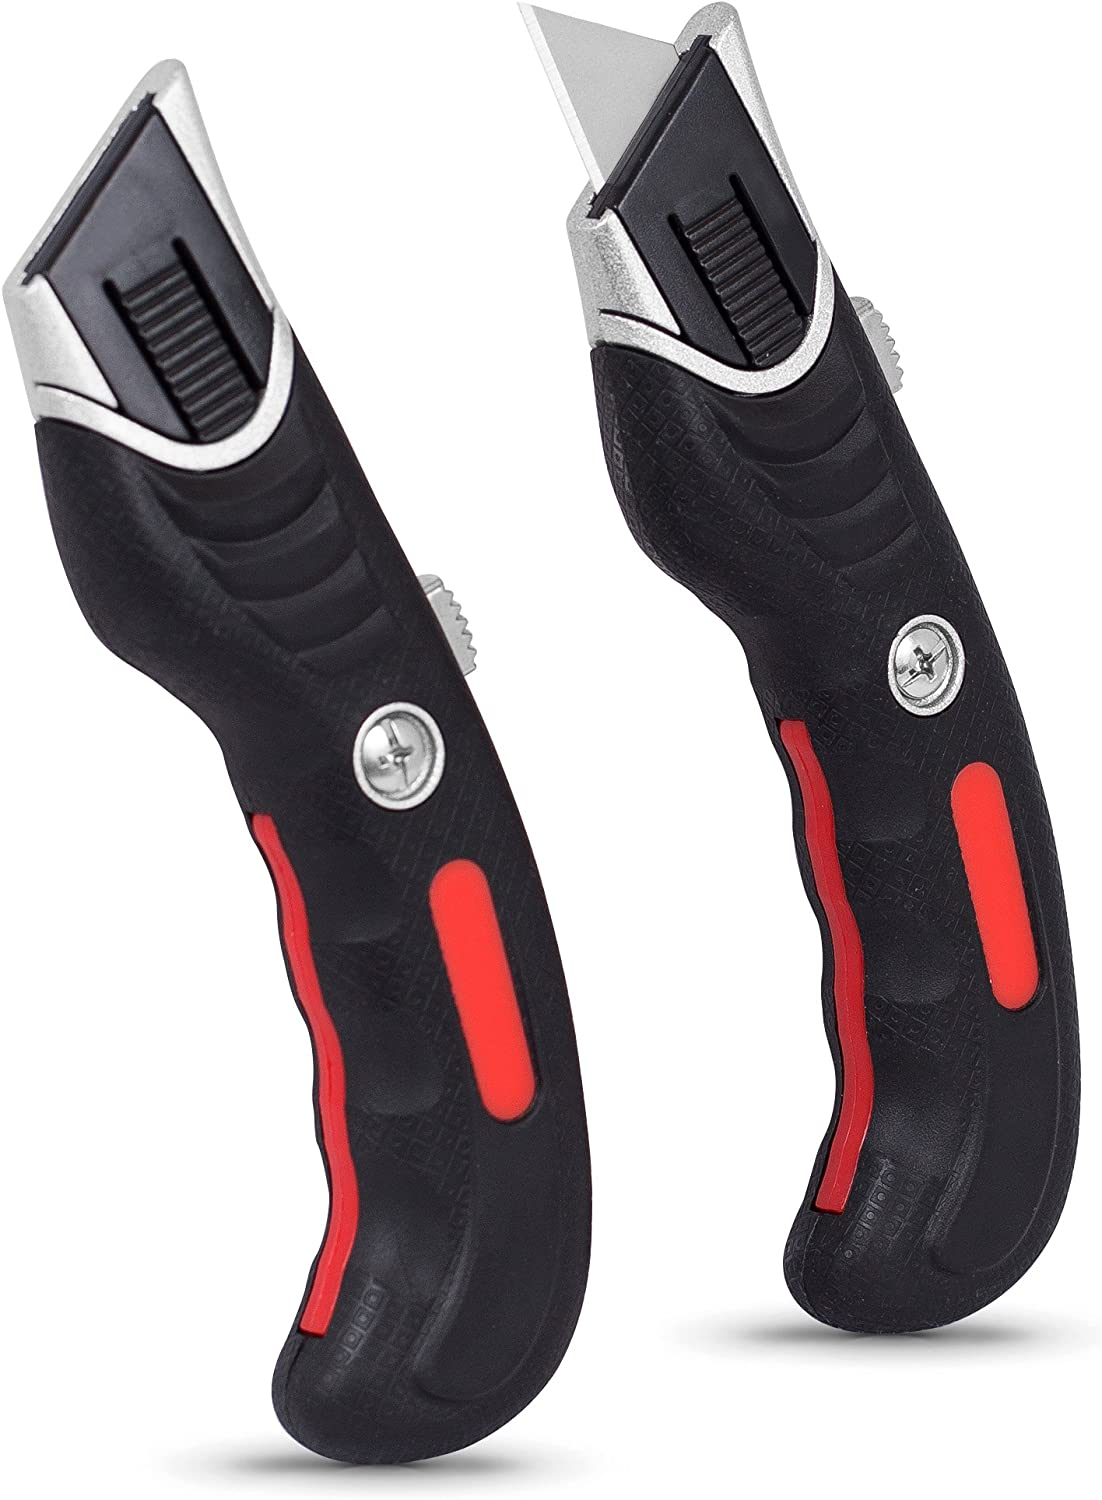 Internet's Best Ergonomic Excellence Utility Knife Retractable Set - 2 Be super welcome of